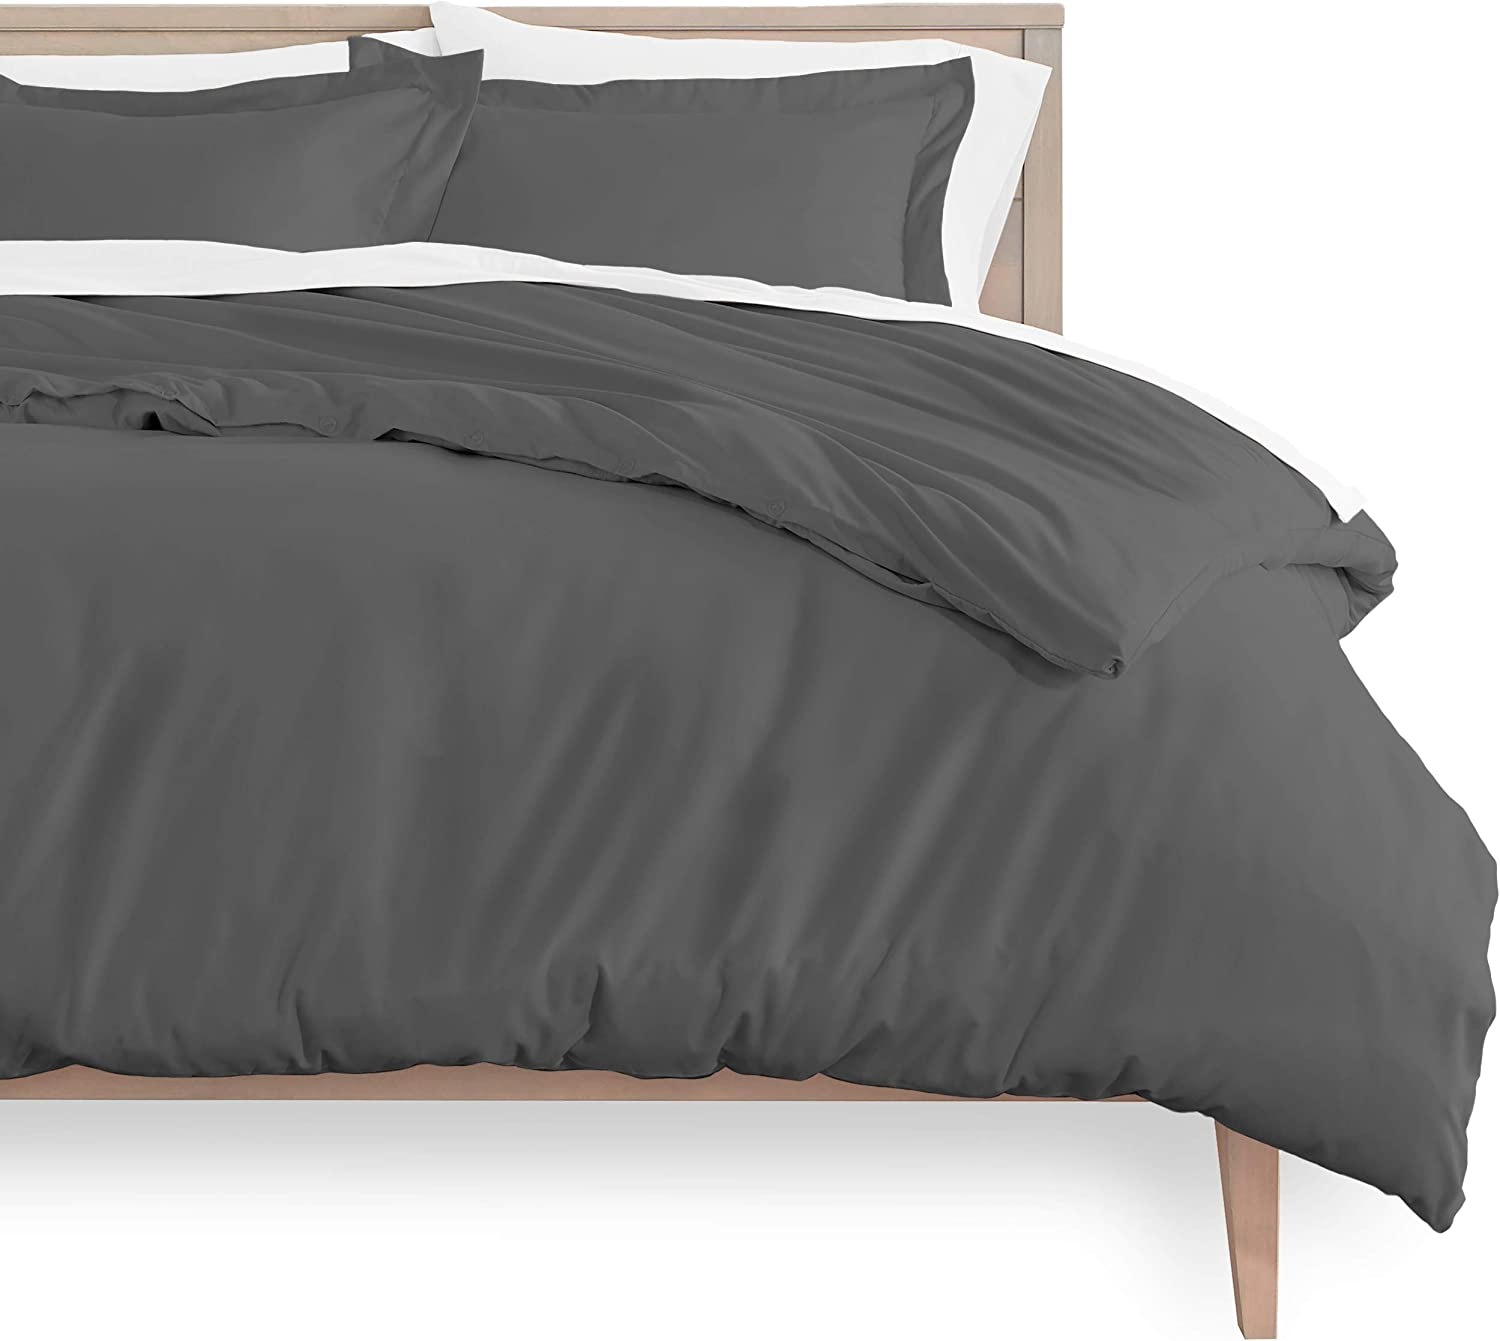 Amazon Com Bare Home Duvet Cover And Sham Set King Size Premium 1800 Ultra Soft Brushed Microfiber Hypoallergenic Easy Care Wrinkle Resistant King Grey Home Kitchen